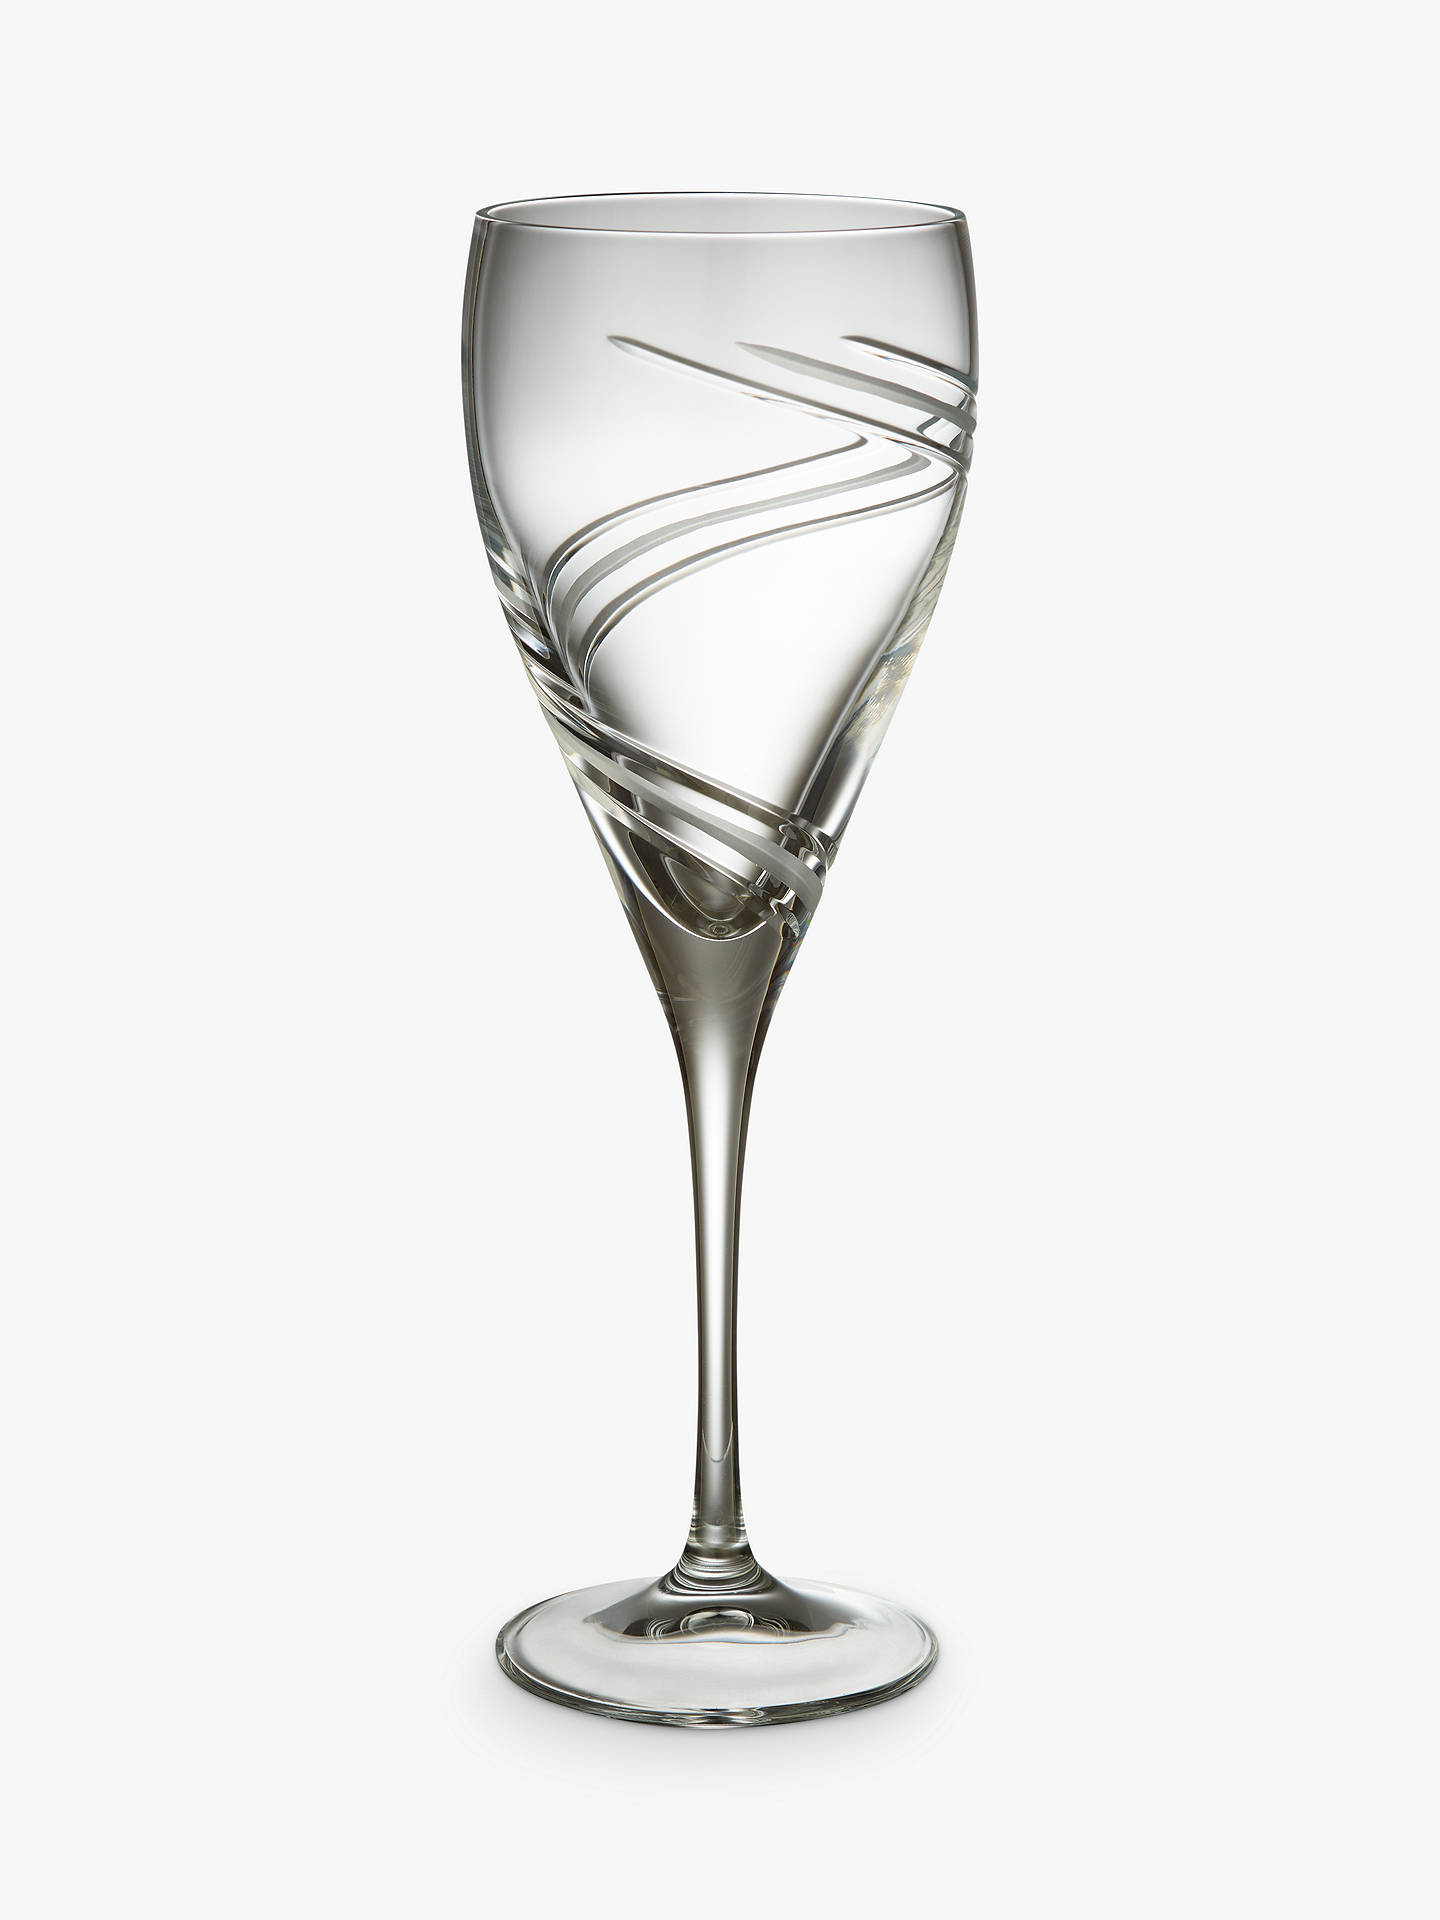 Buy John Lewis & Partners Celestial Glass Wine Goblets, Clear, 338ml, Set of 2 Online at johnlewis.com